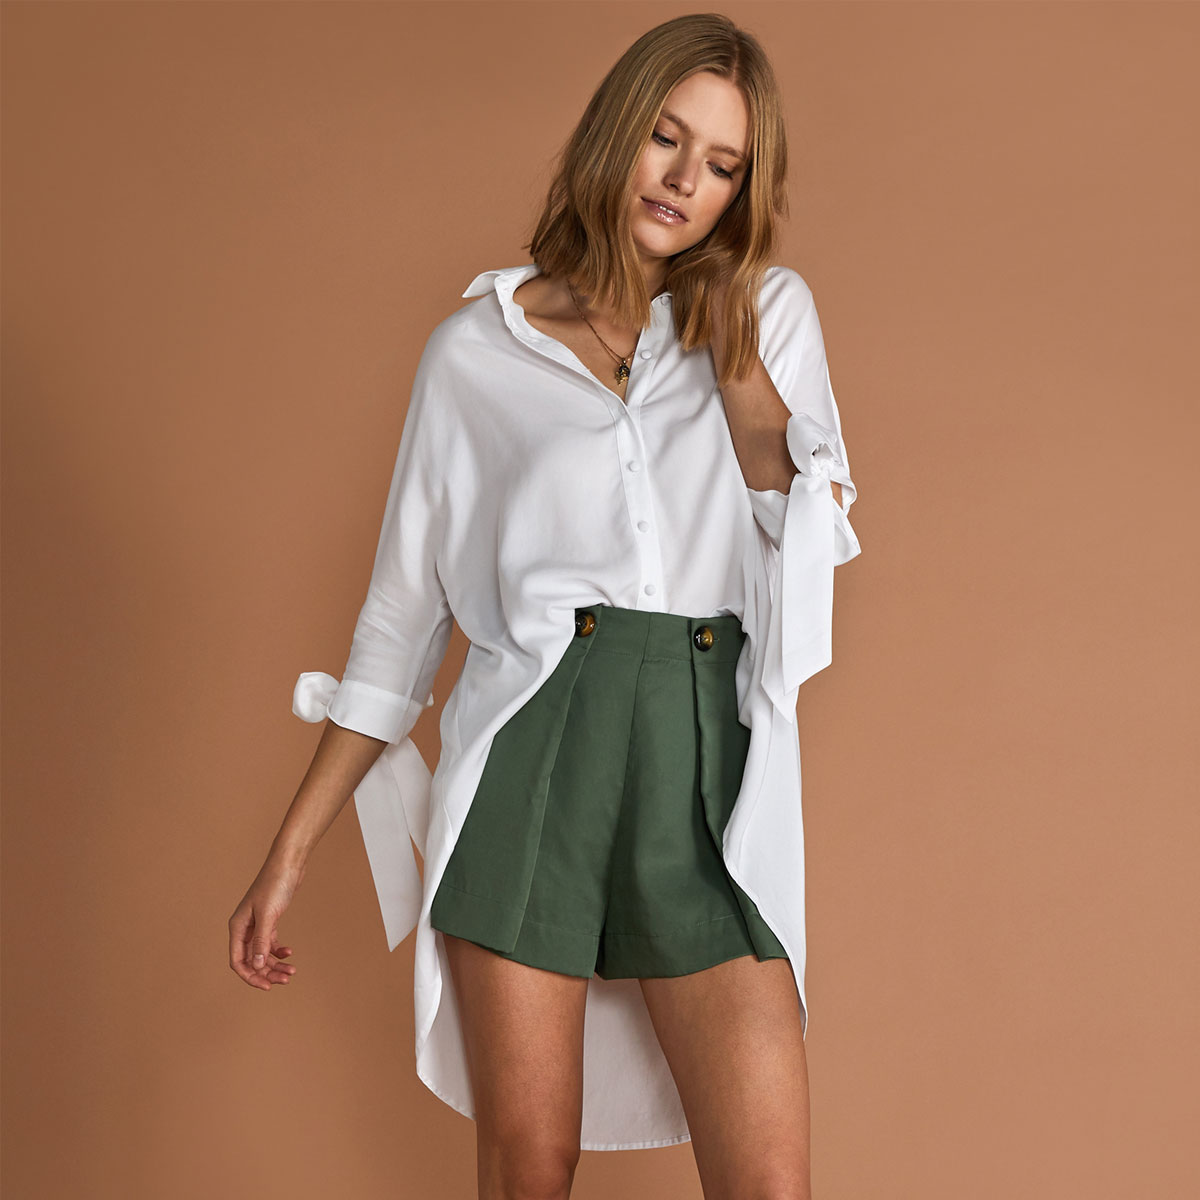 Sancia Ophelie Blouse in White on woman